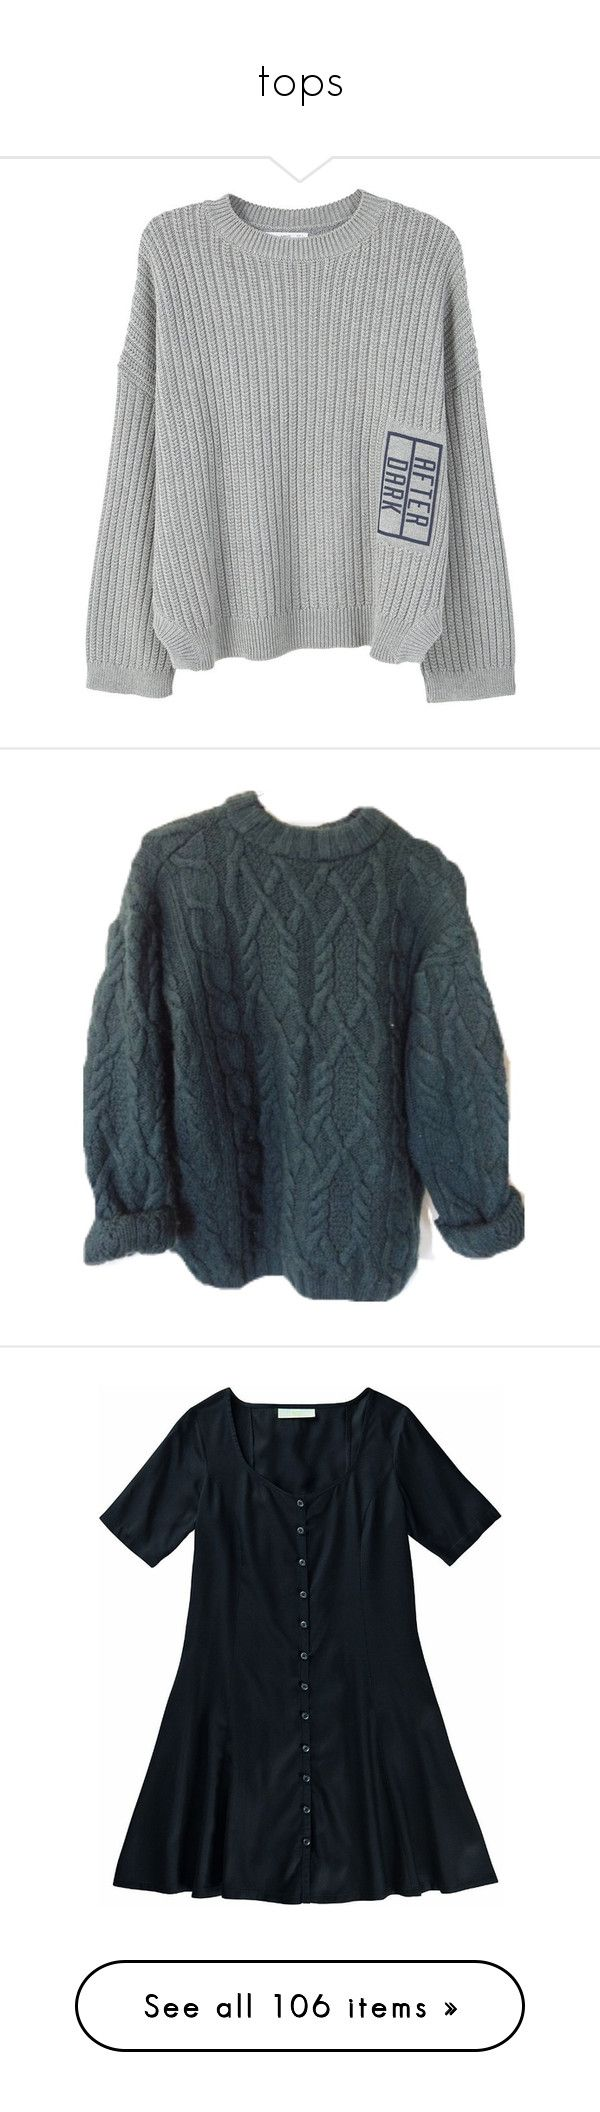 """tops"" by celui-calme ❤ liked on Polyvore featuring tops, sweaters, clothing - ls tops, jumpers, cable-knit sweater, cable sweater, embellished long sleeve top, cable jumper, chunky knit jumper and shirts"